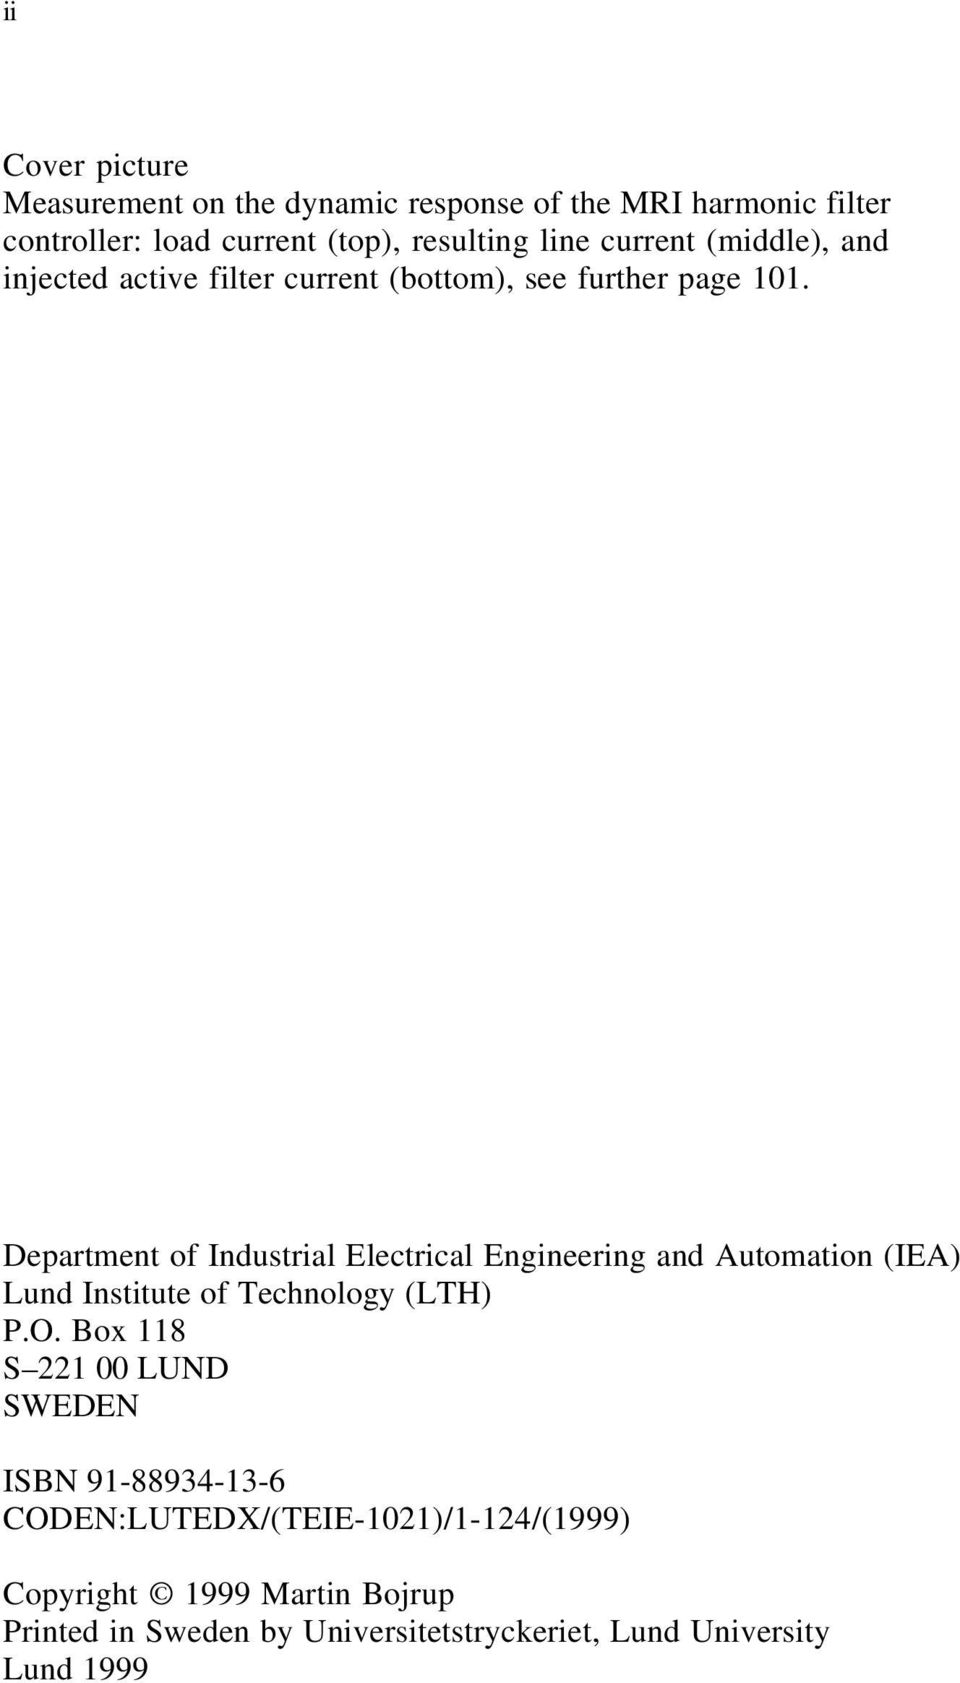 Depatment of Industial Electical Engineeing and Automation (IEA) Lund Institute of Technology (LTH) P.O.